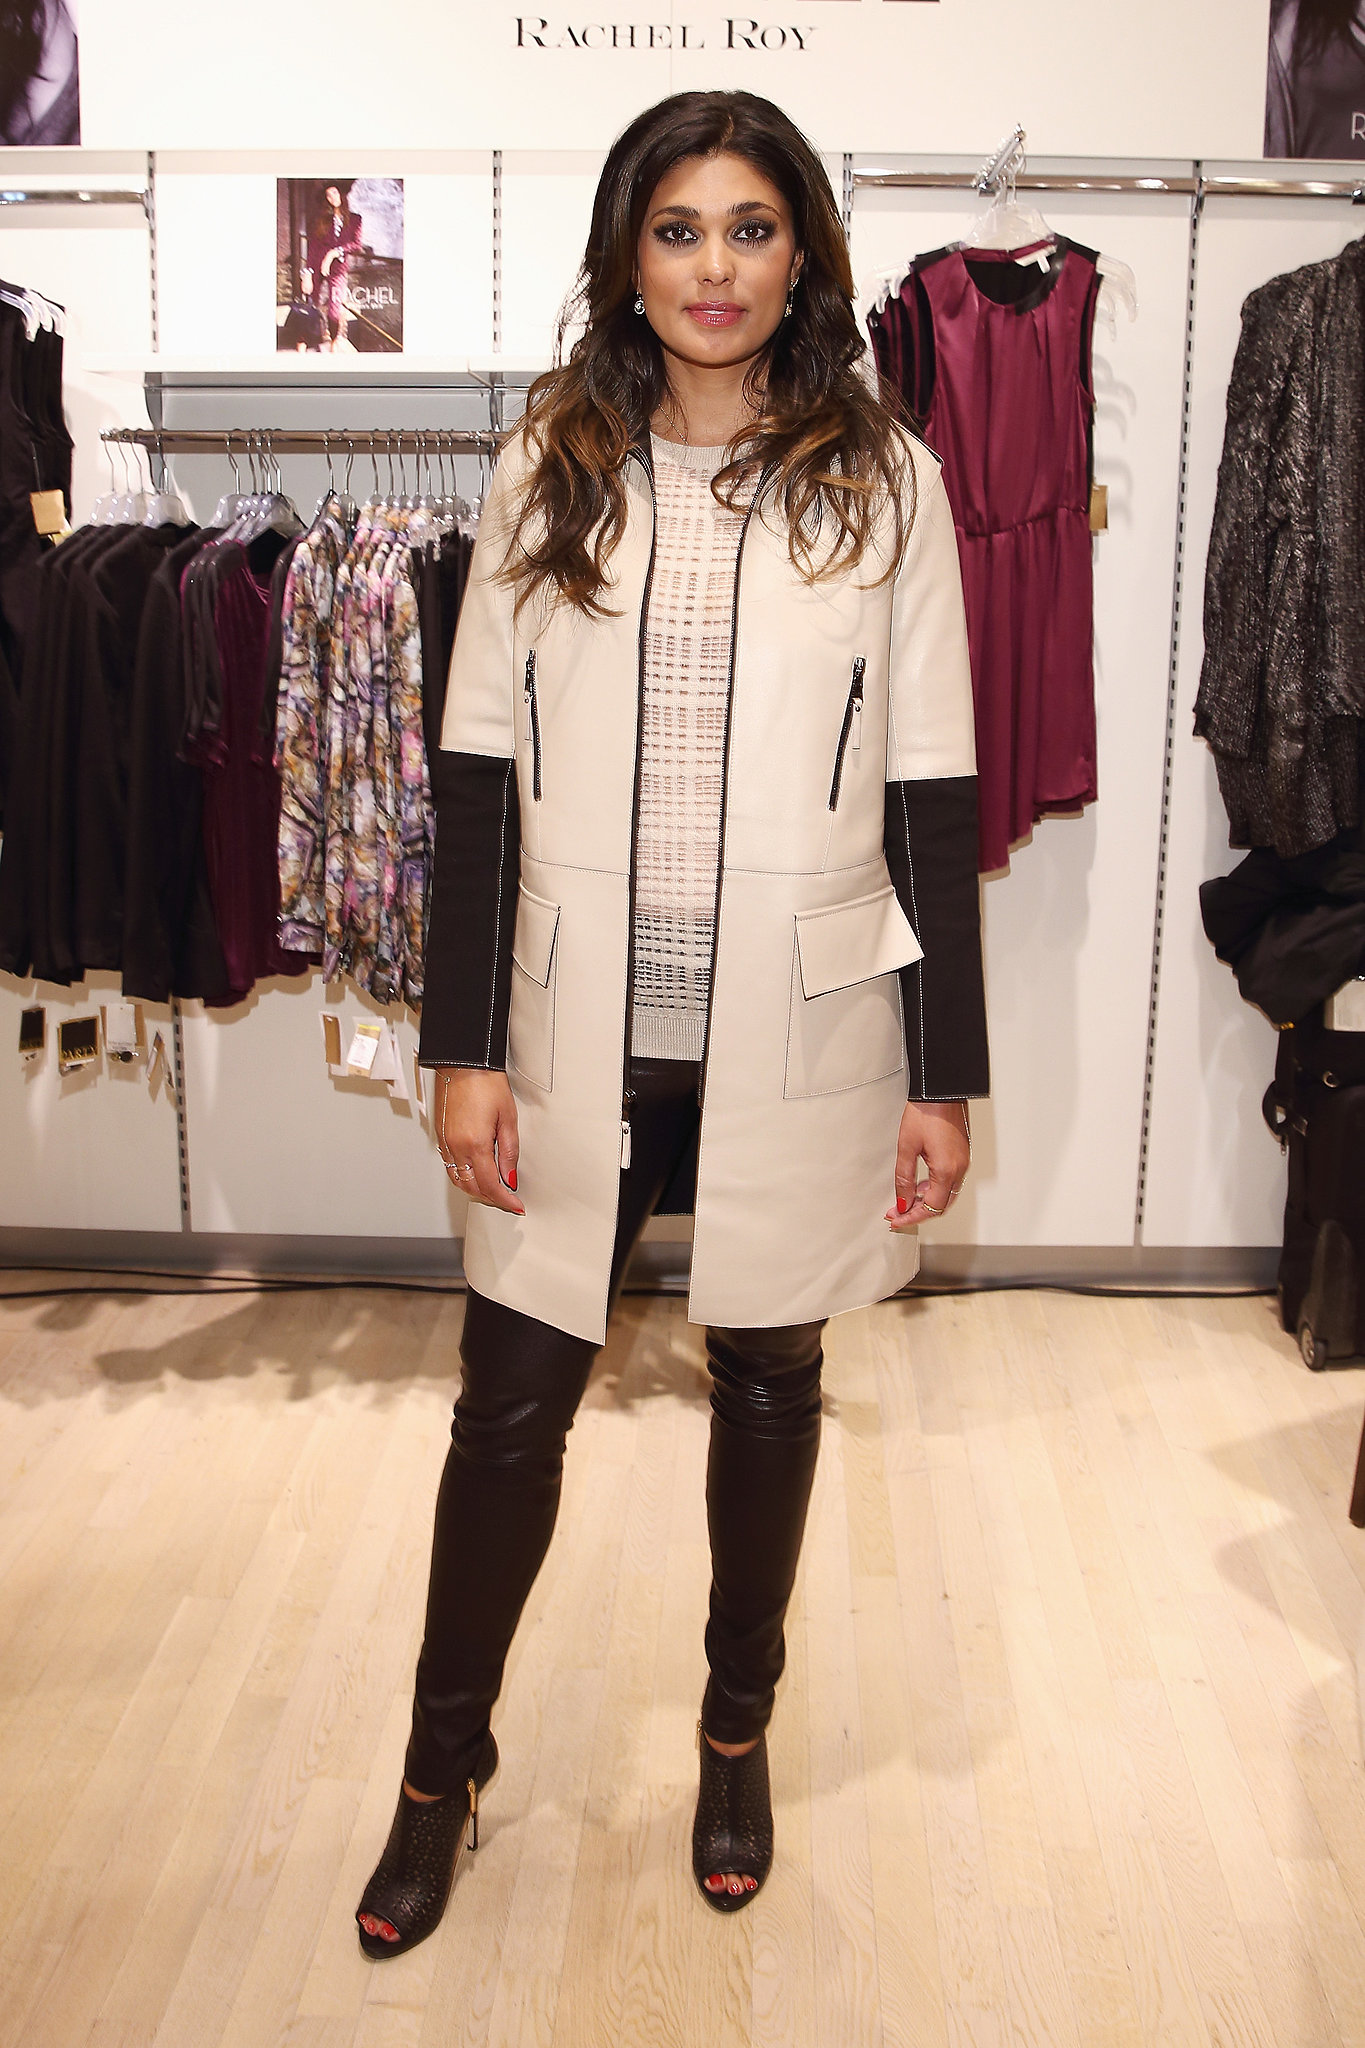 Rachel Roy at the Rachel Roy Collection presentation.